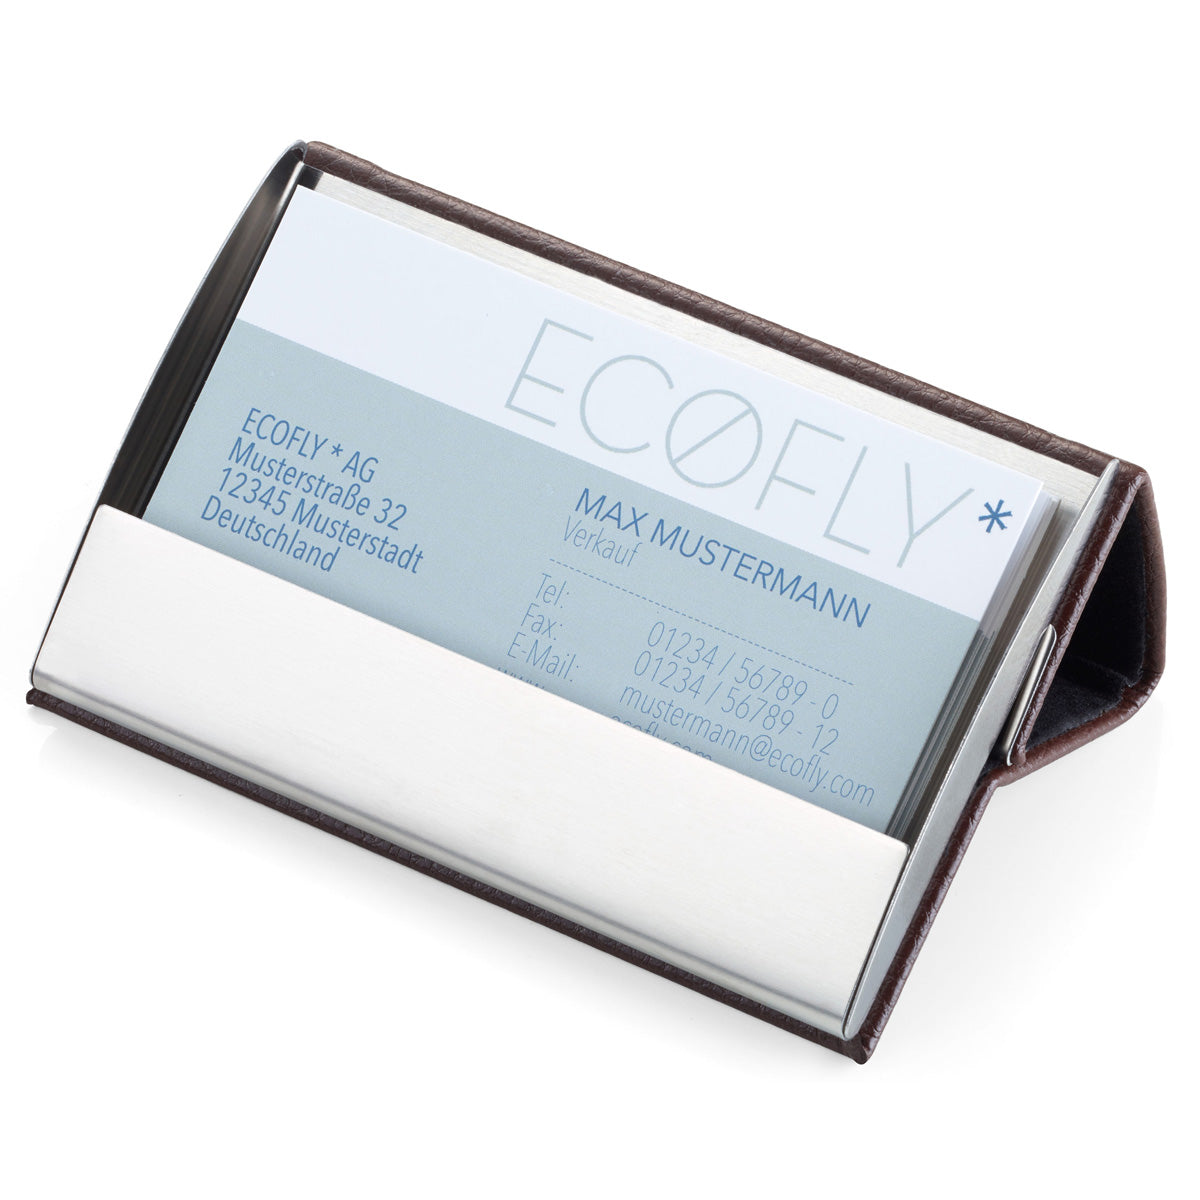 Troika Business Card Case And Stand Troikaus